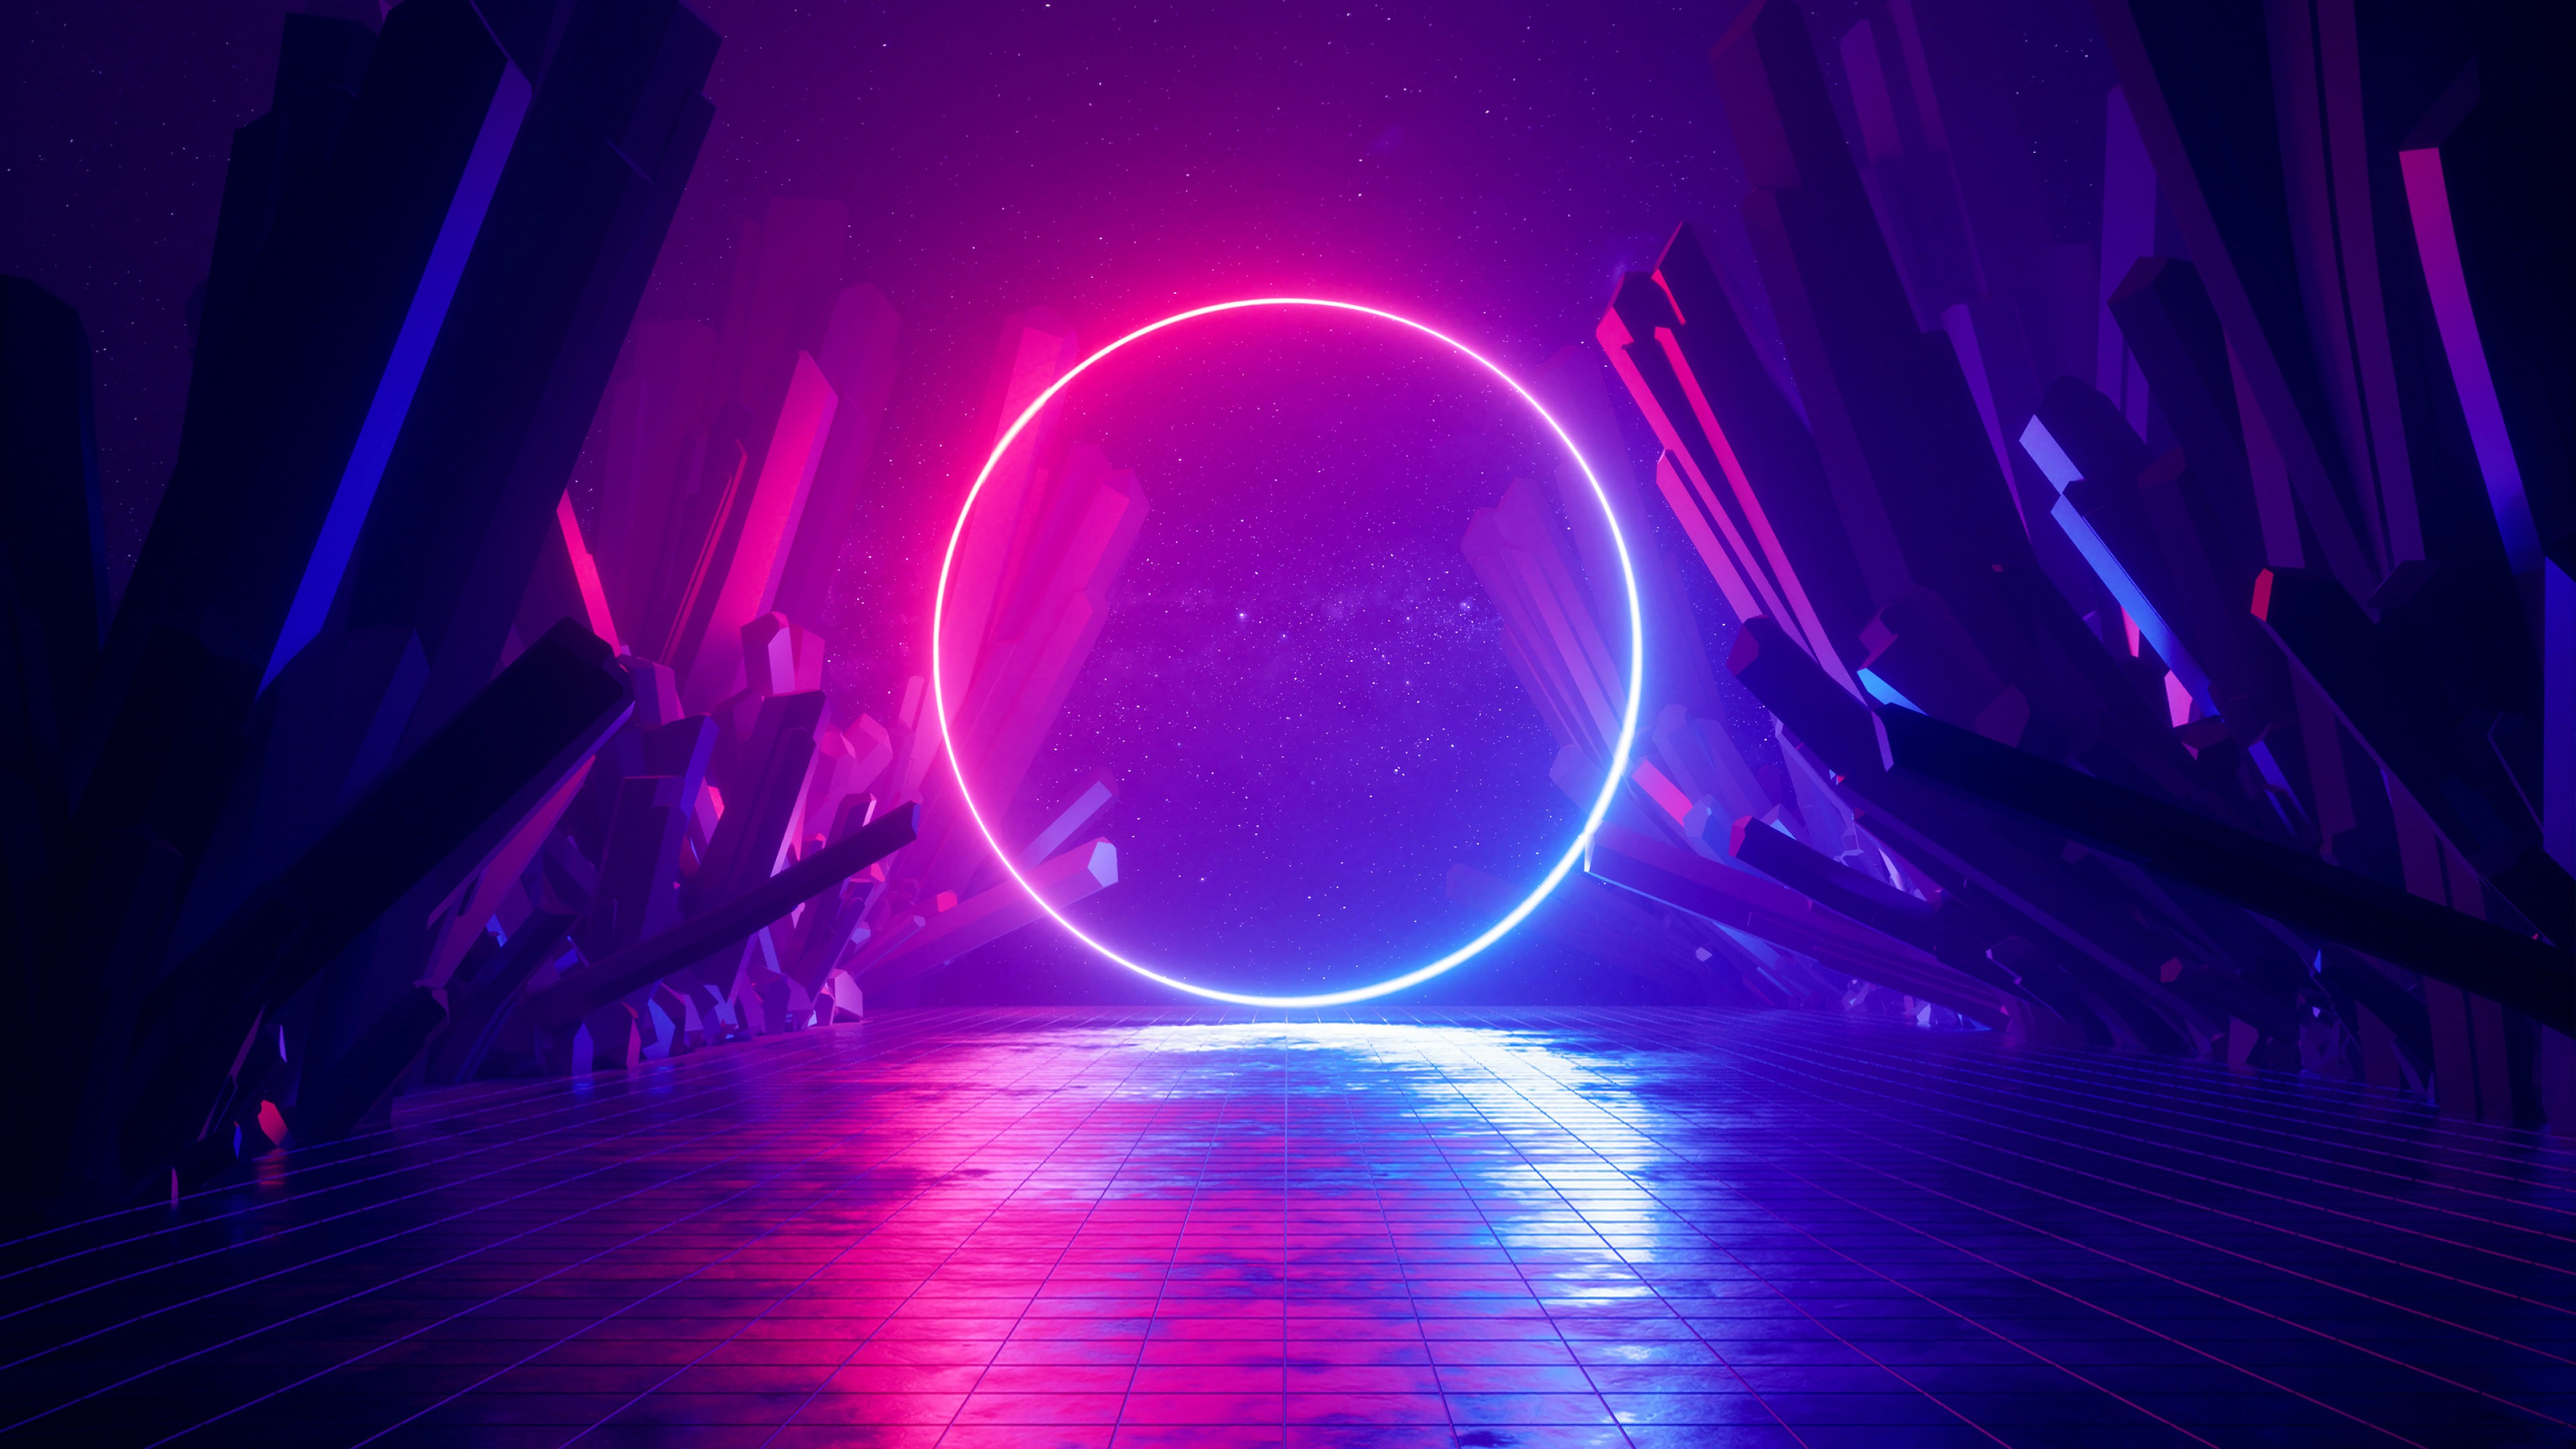 ultraviolet 4K wallpapers for your